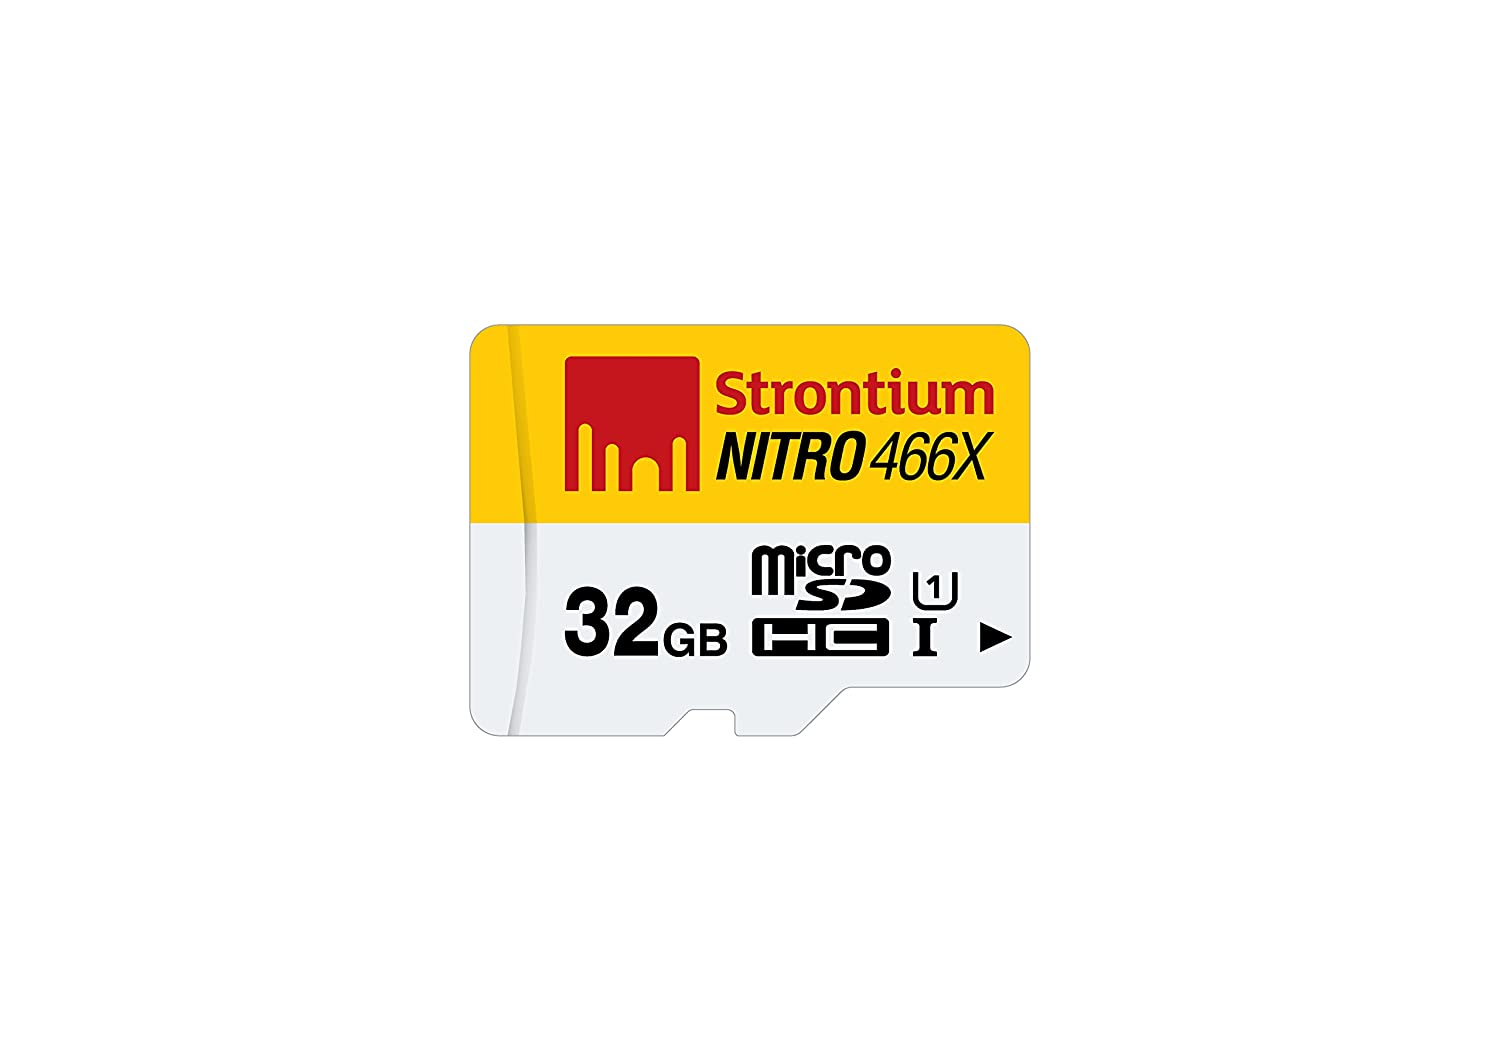 FREE SHIPPING!! Strontium 32GB MicroSDHC Card (Class 10) low price